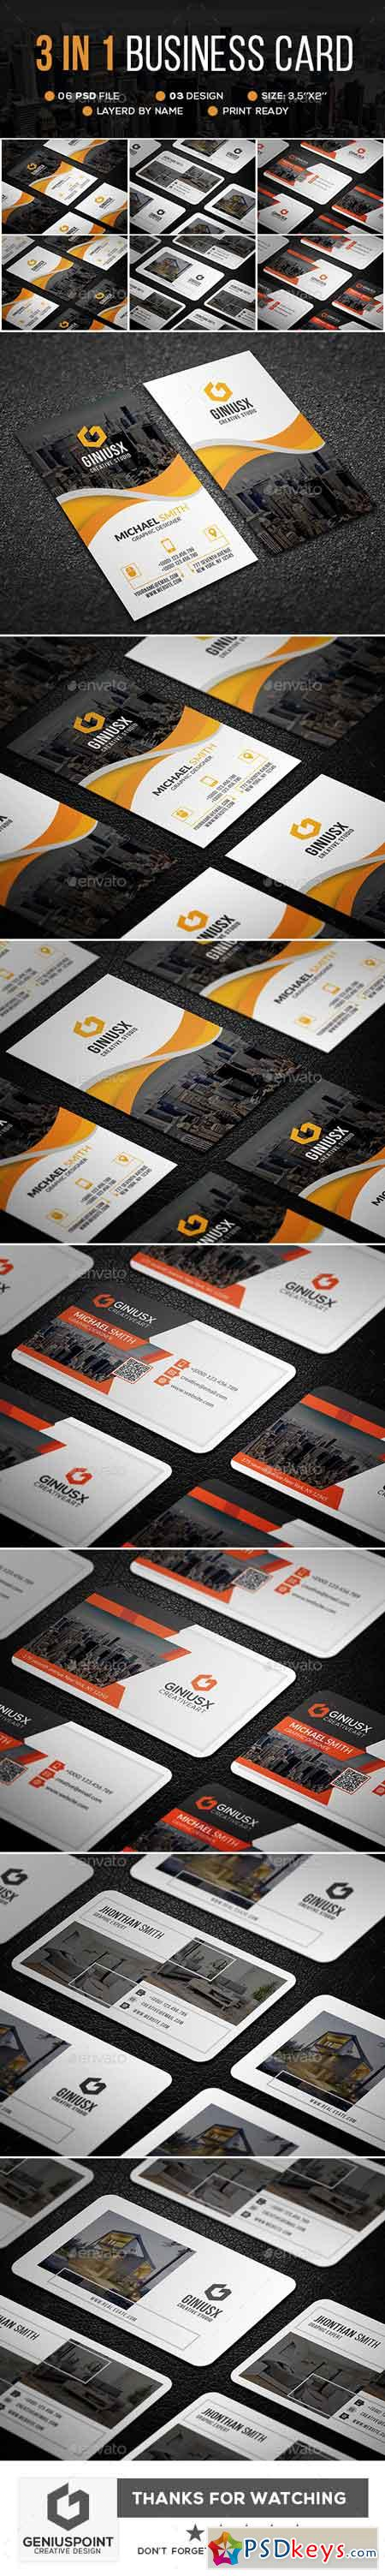 3 in 1 Business Card Bundle 23117698